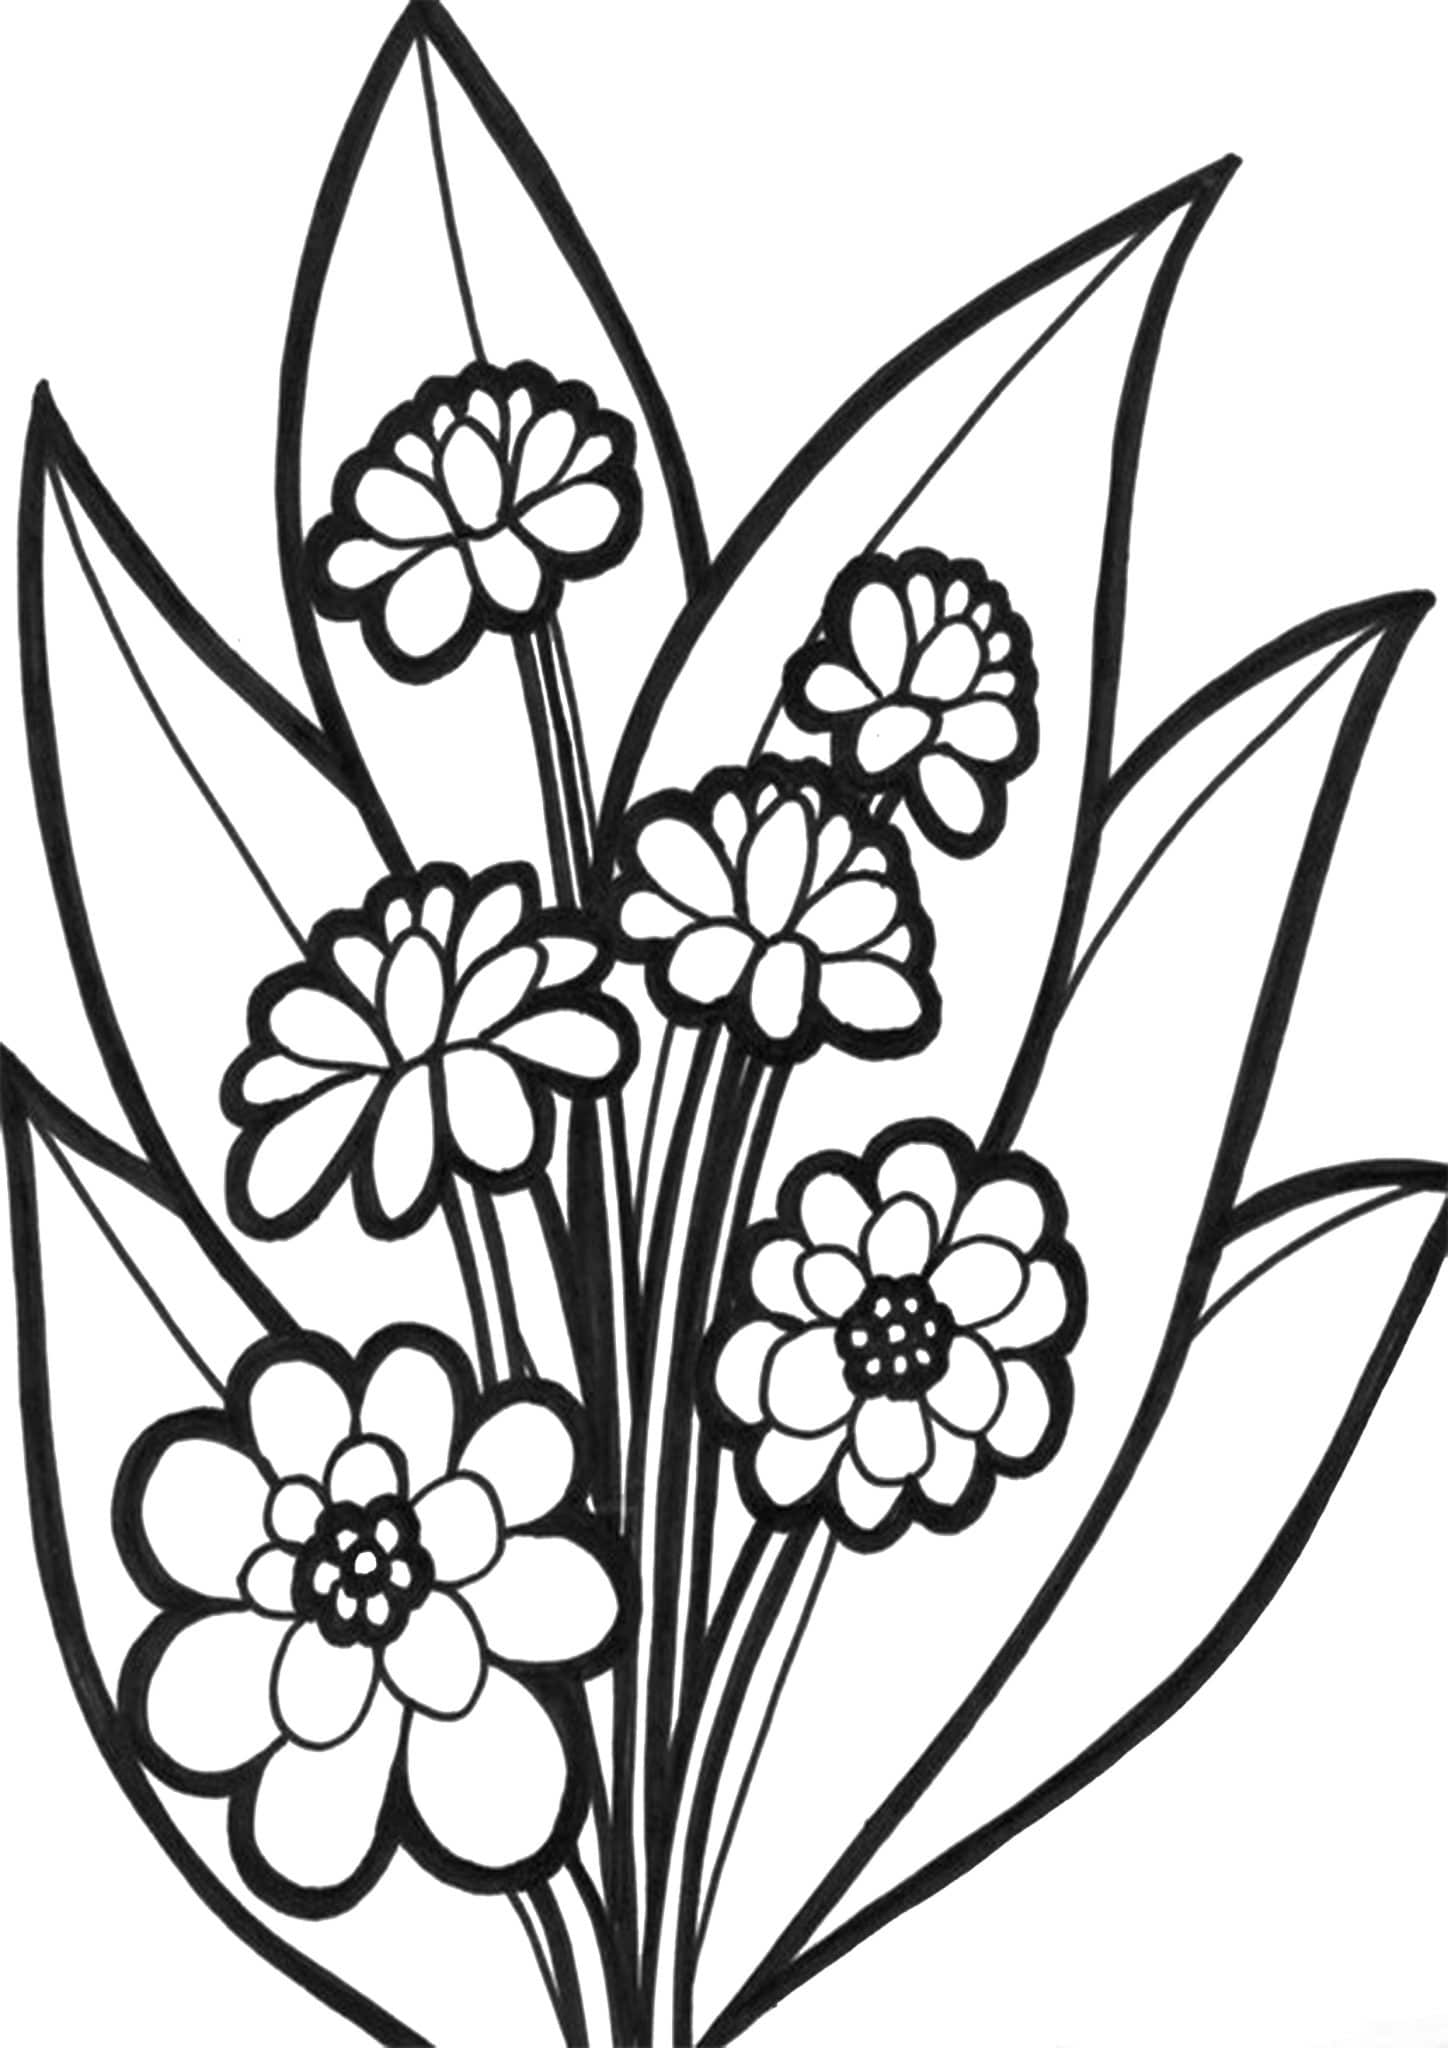 picture of a flower to color free download to print beautiful spring flower coloring flower to a of picture color